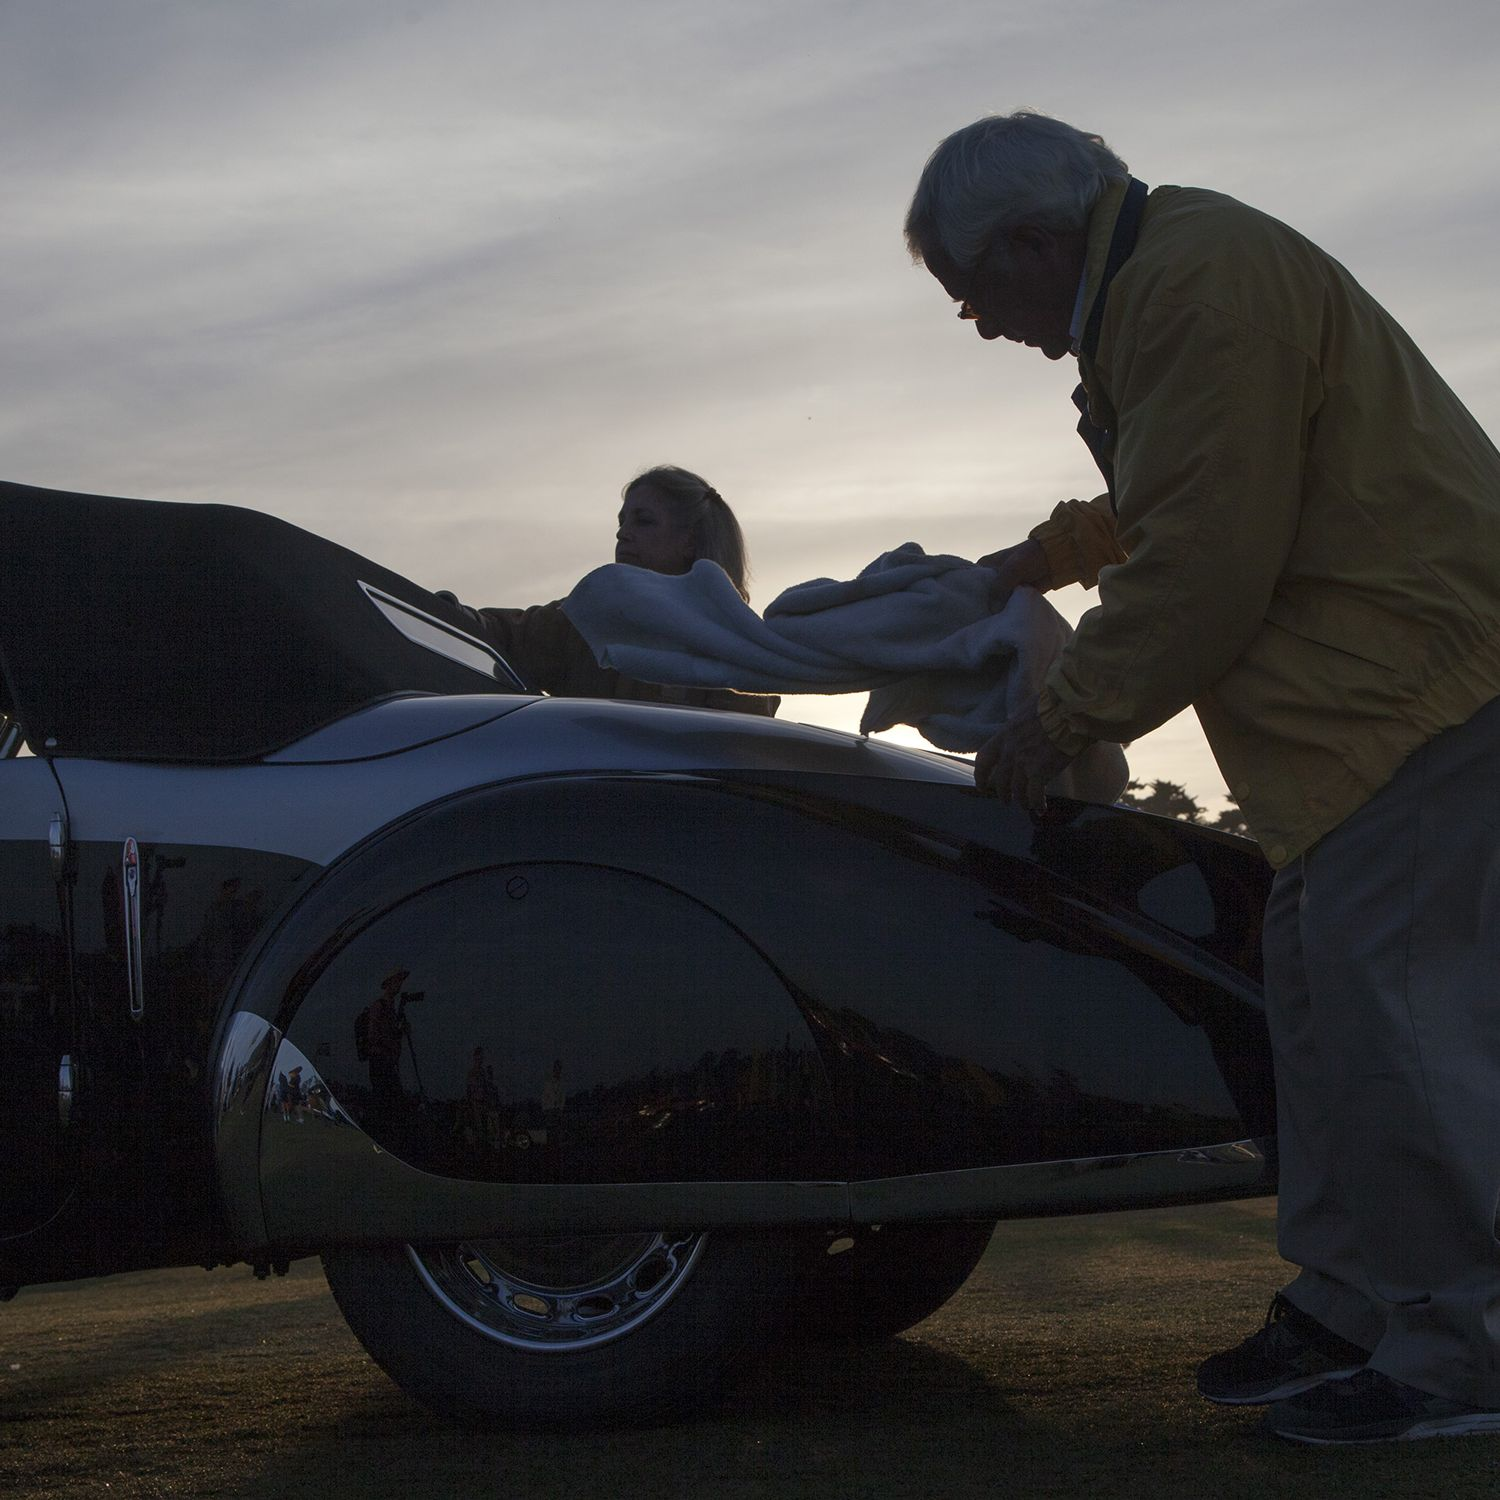 After driving onto the fairway, at the Lodge at Pebble Beach, Louis and Abigail Natenshon perform at external clean of their 1937 Peugeot 402 Pourtout Cabriolet. The Nathenshon's are from Highland Park, Ill. Every year, the world's auto enthusiasts travel to the Monterey Peninsula to participate in the Car Week that culminates with the luxurious Concours d'Elegance classic car competition. PHOTOGRAPHED SUNDAY AUGUST 16, 2015(Photo by Don Kelsen/Los Angeles Times via Getty Images)